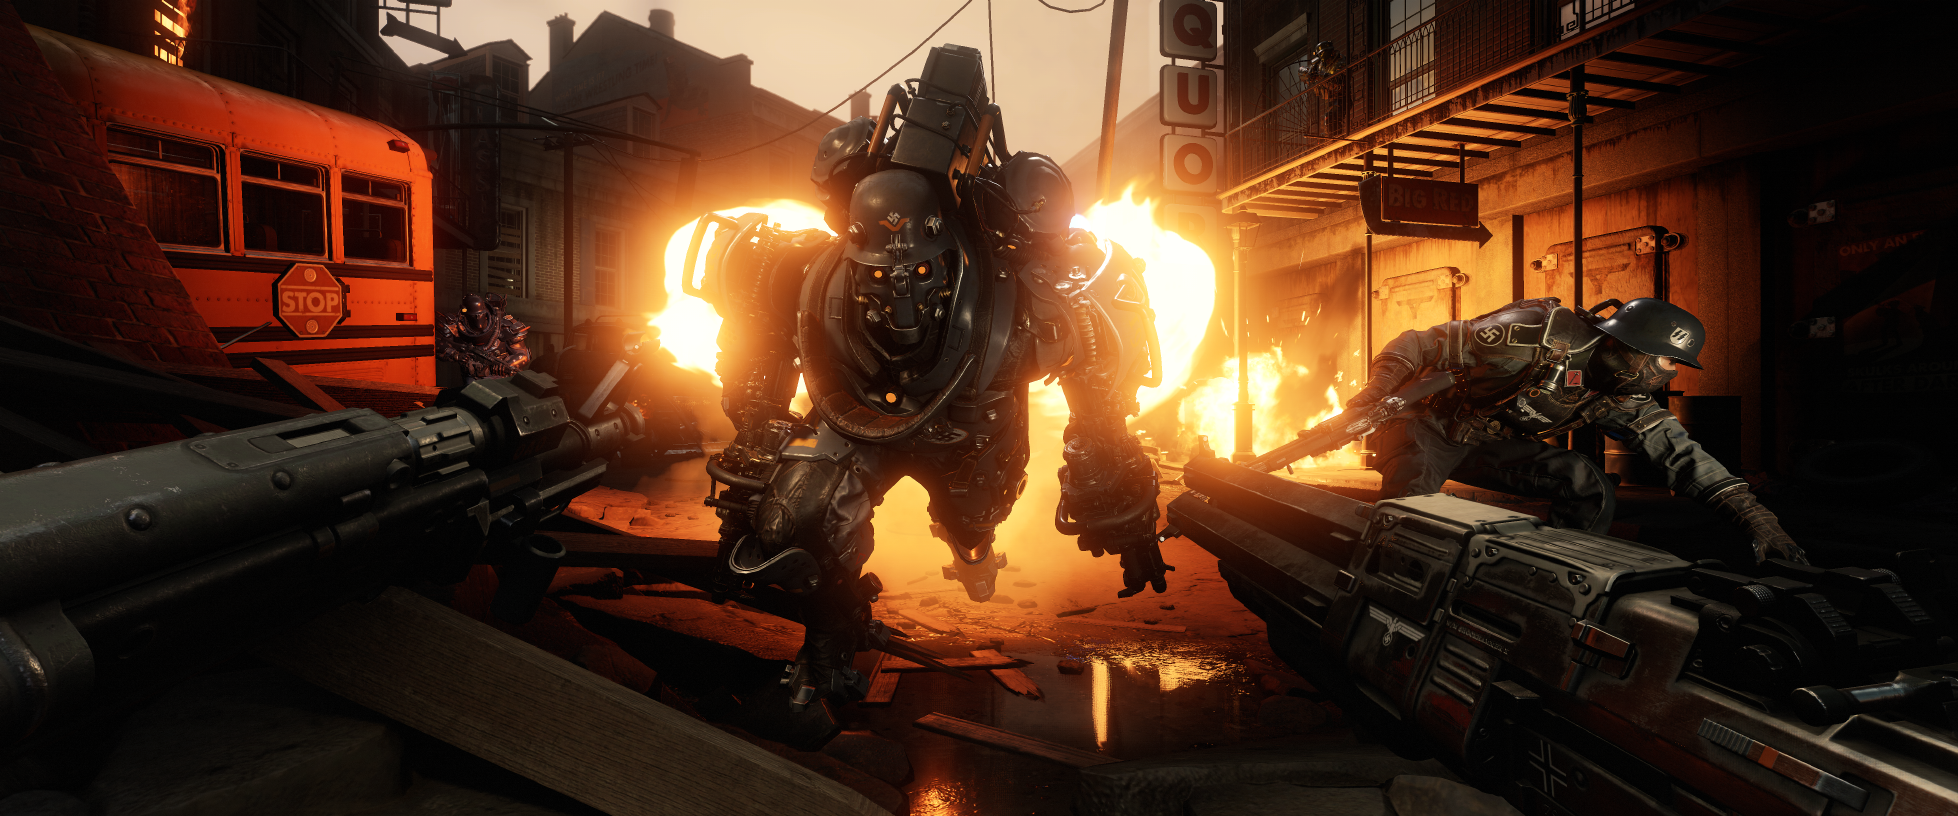 If the 8 minute Wolfenstein 2: The New Colossus announce trailer was too much for you, here's a new, shorter cut